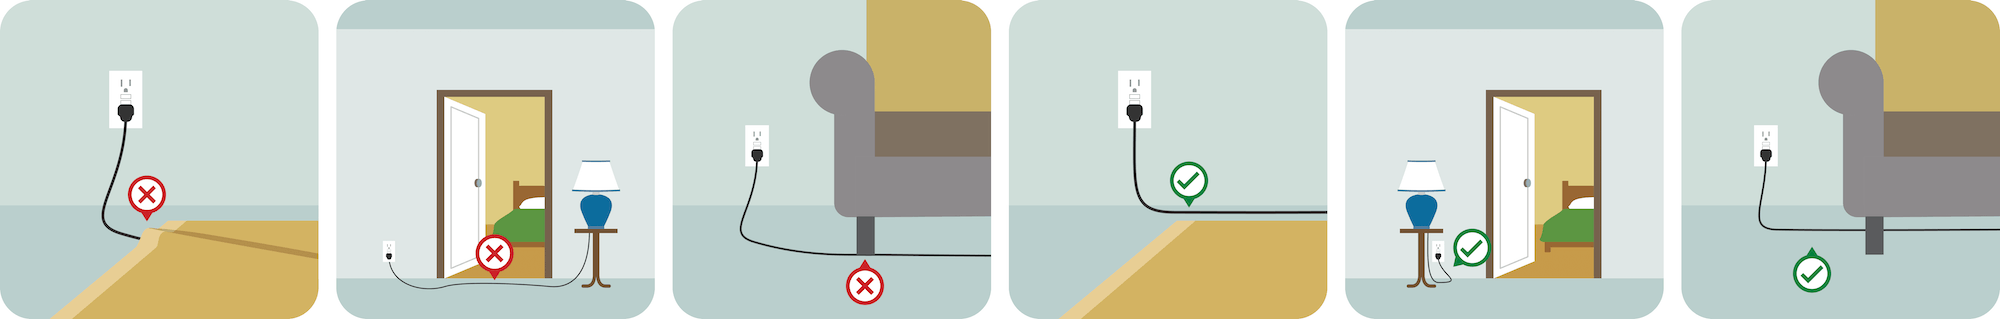 Example of not putting power cords under rugs or furniture.